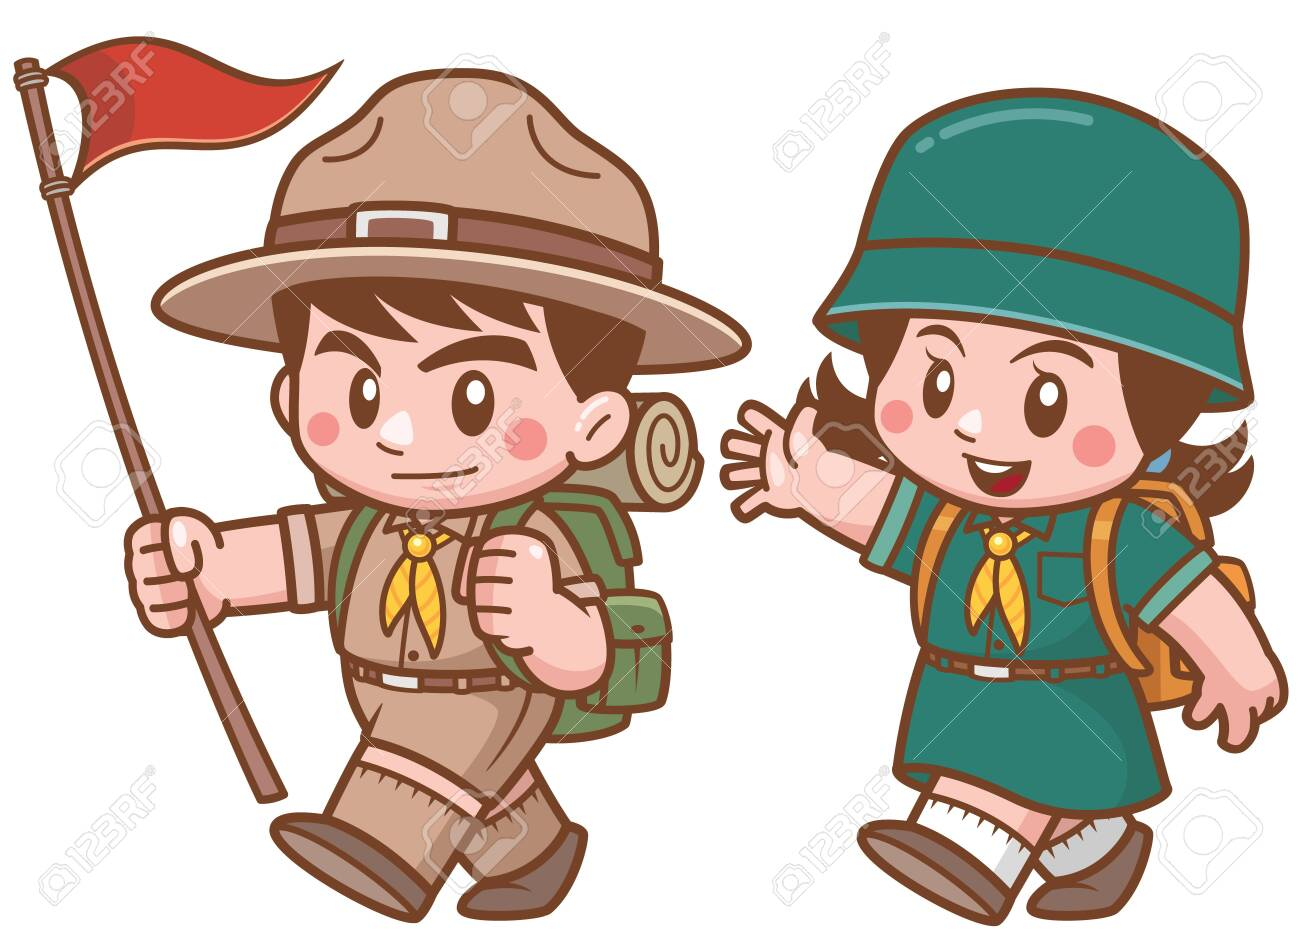 Vector illustration of Scout kids character - 128483641